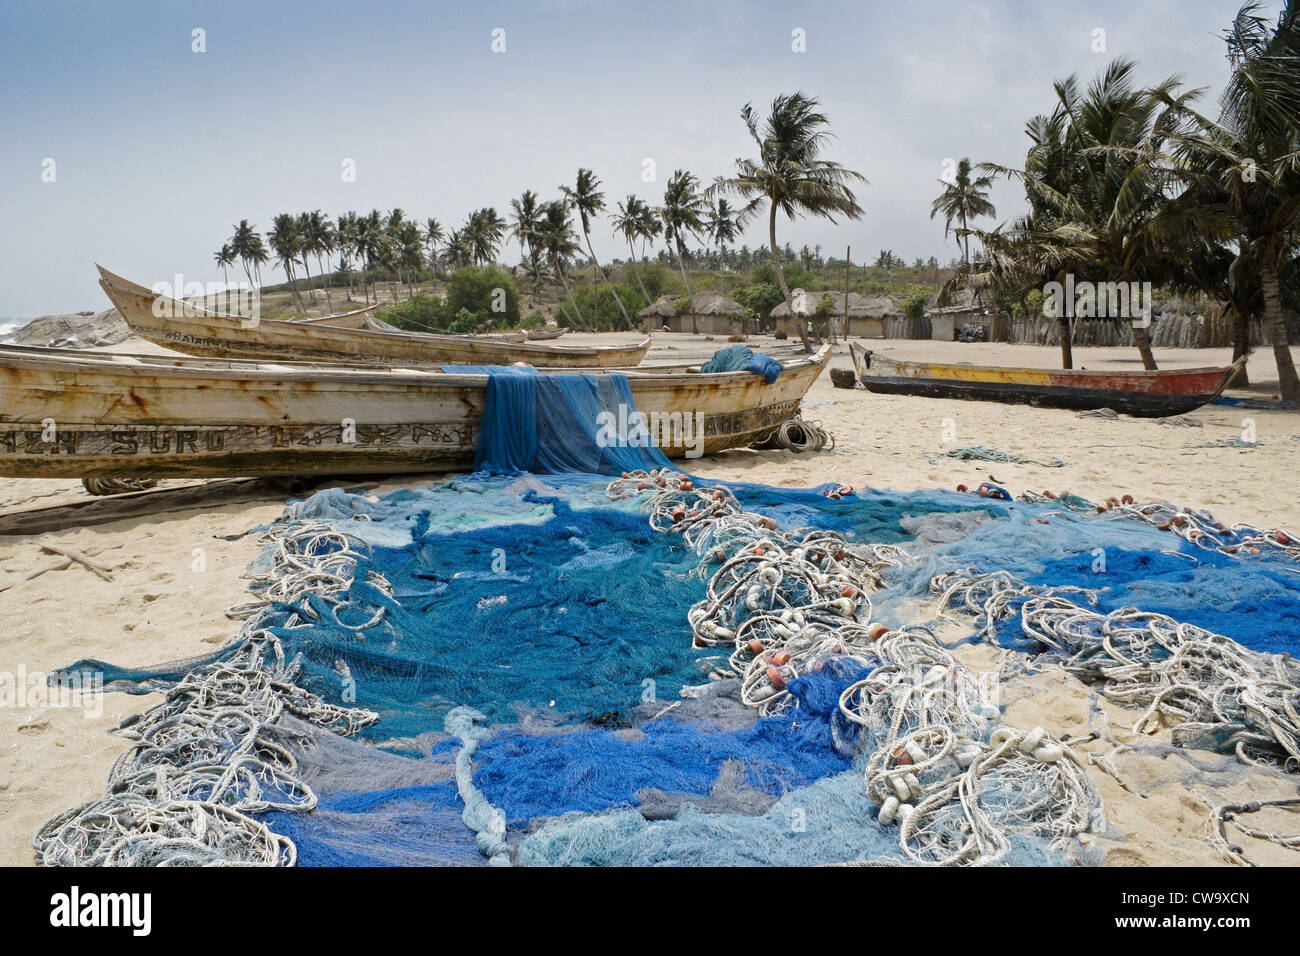 Fishing Boats And Nets On Beach Kortankore Village Ghana Stock